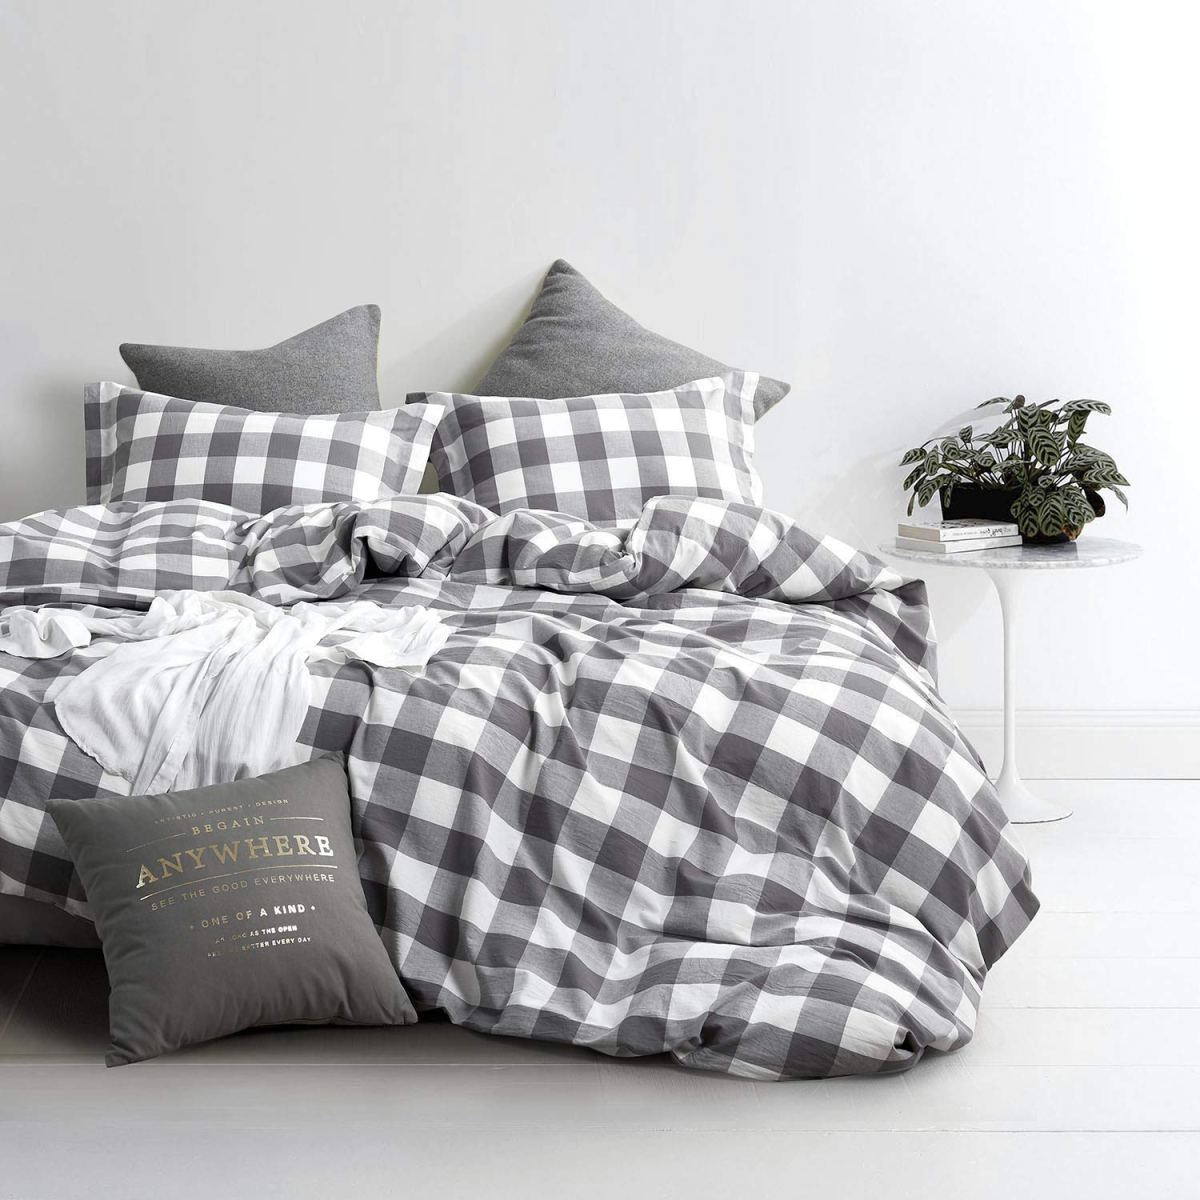 Buffalo Check: Black & White Year-Round Home Decor Ideas